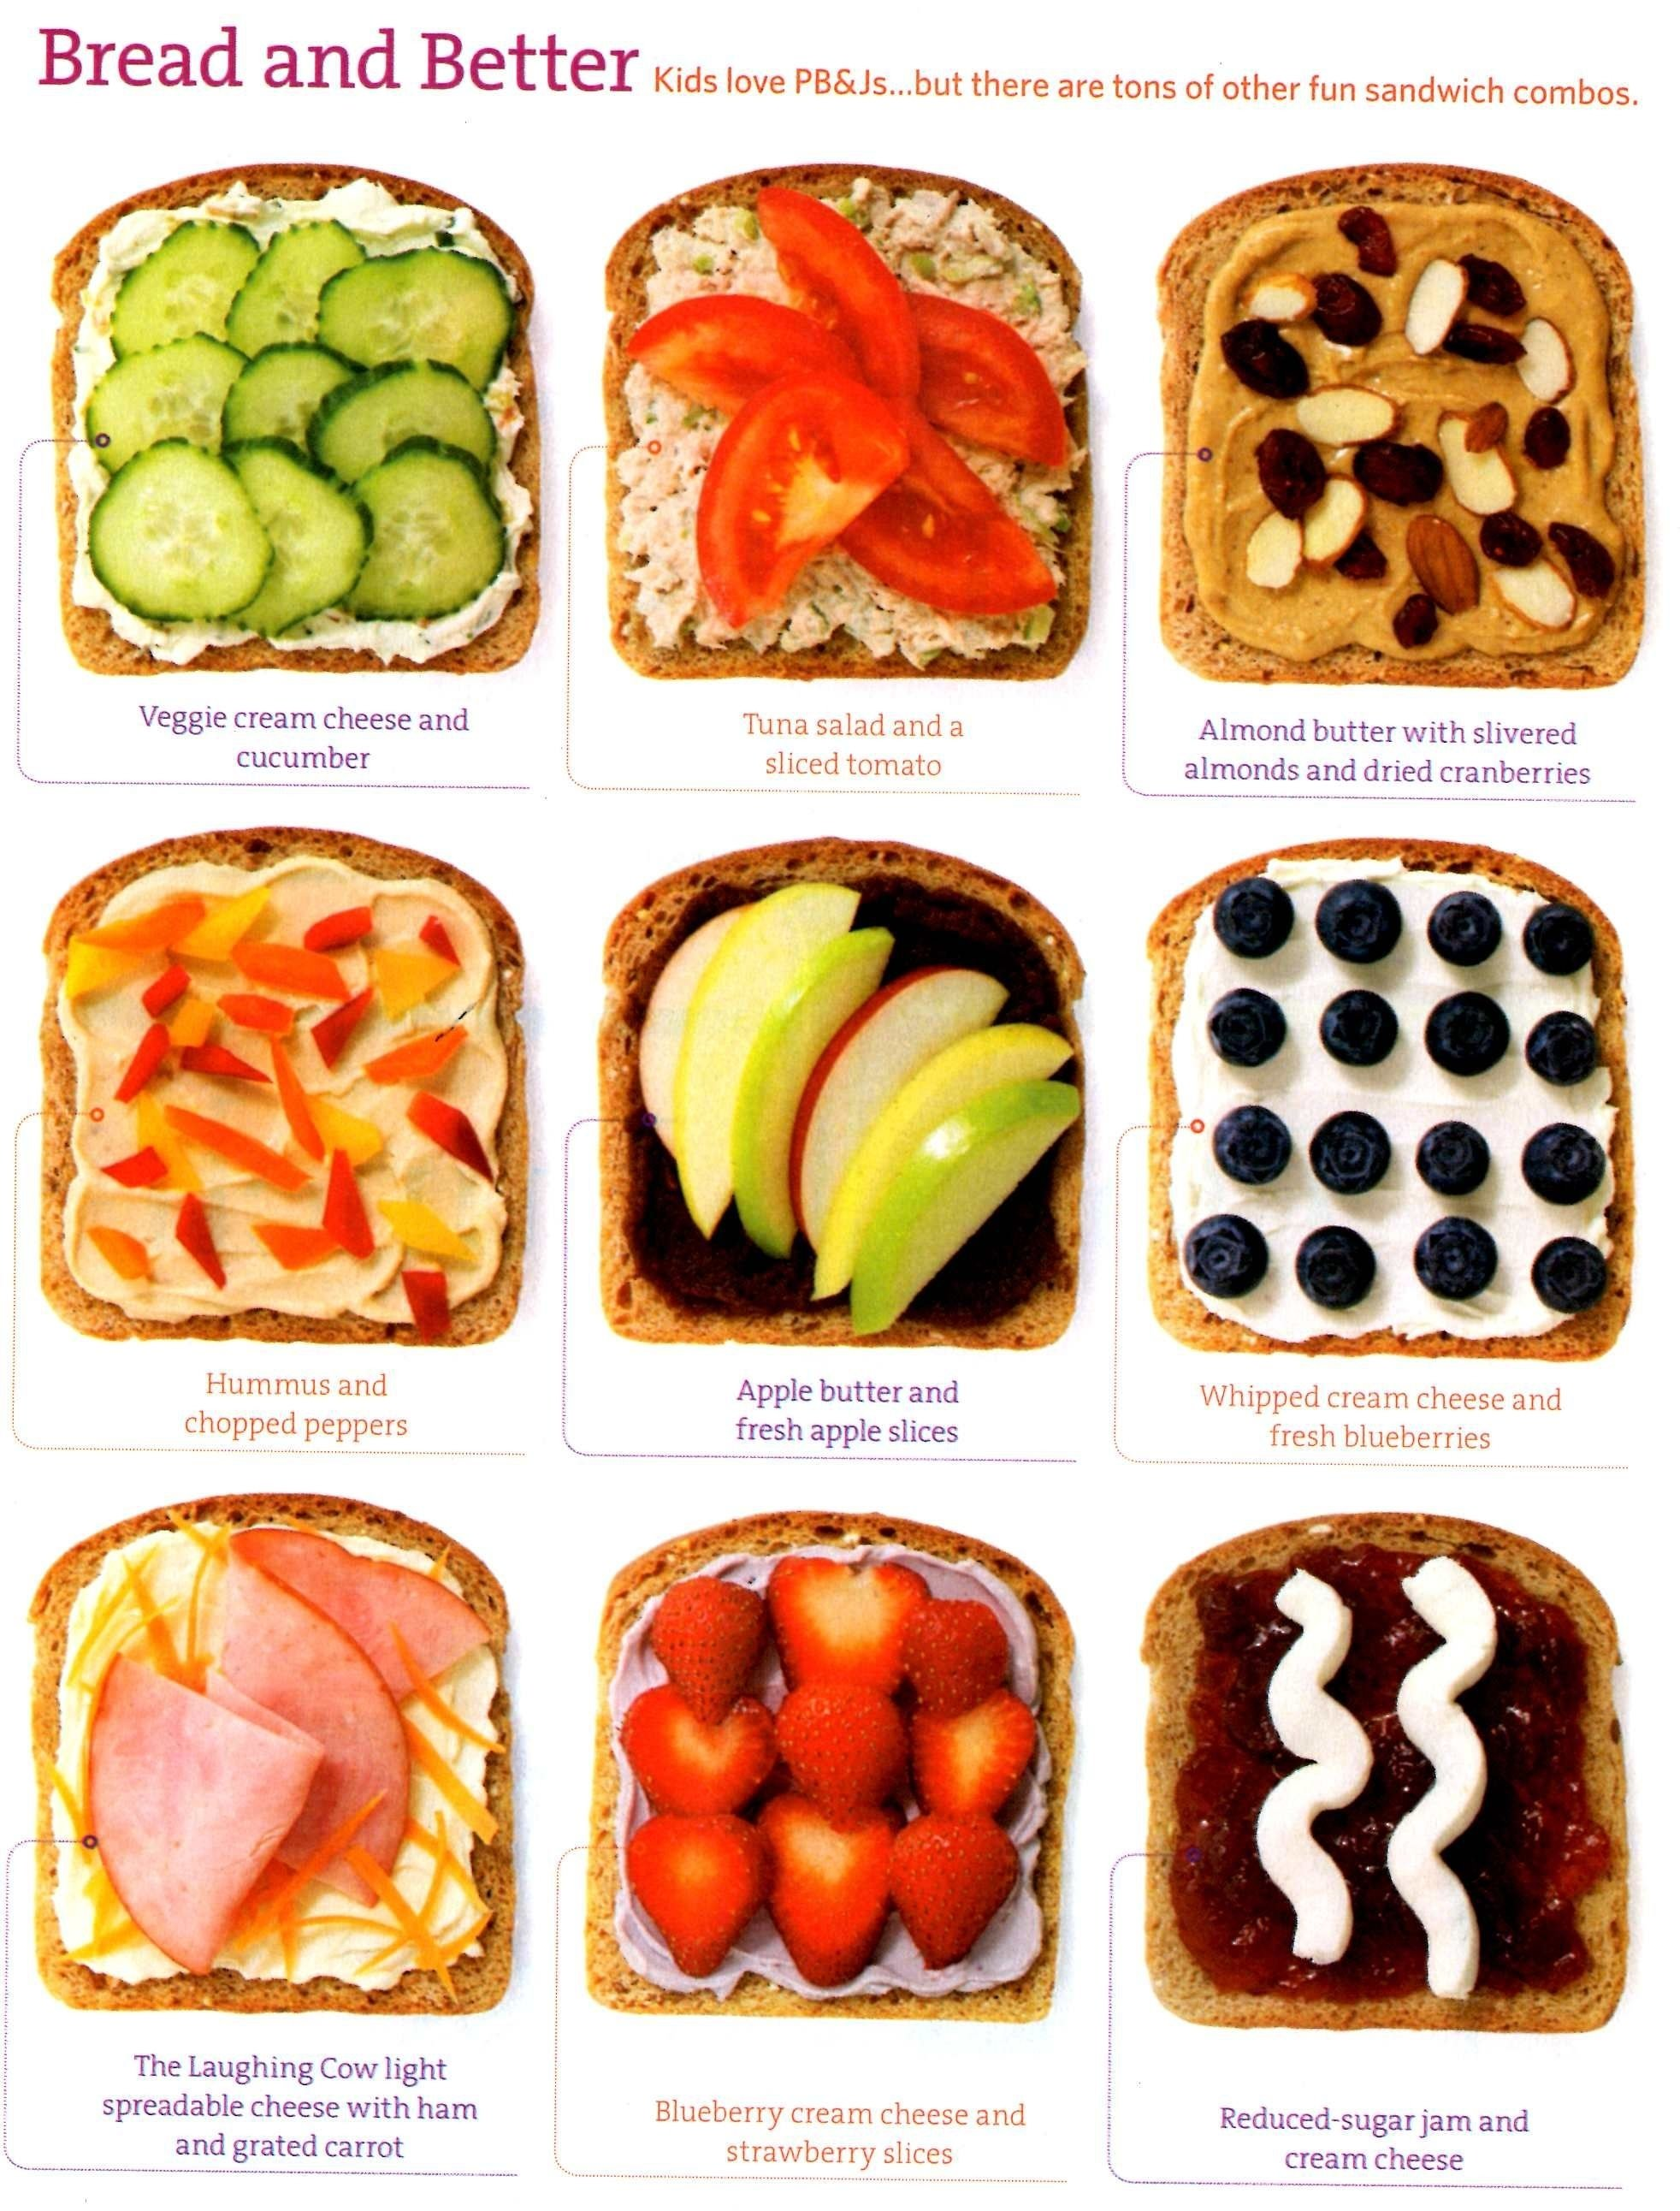 10 Stylish Food Day Ideas For Work 5 no heat lunches to bring to work sandwich ideas lunches and food 2020